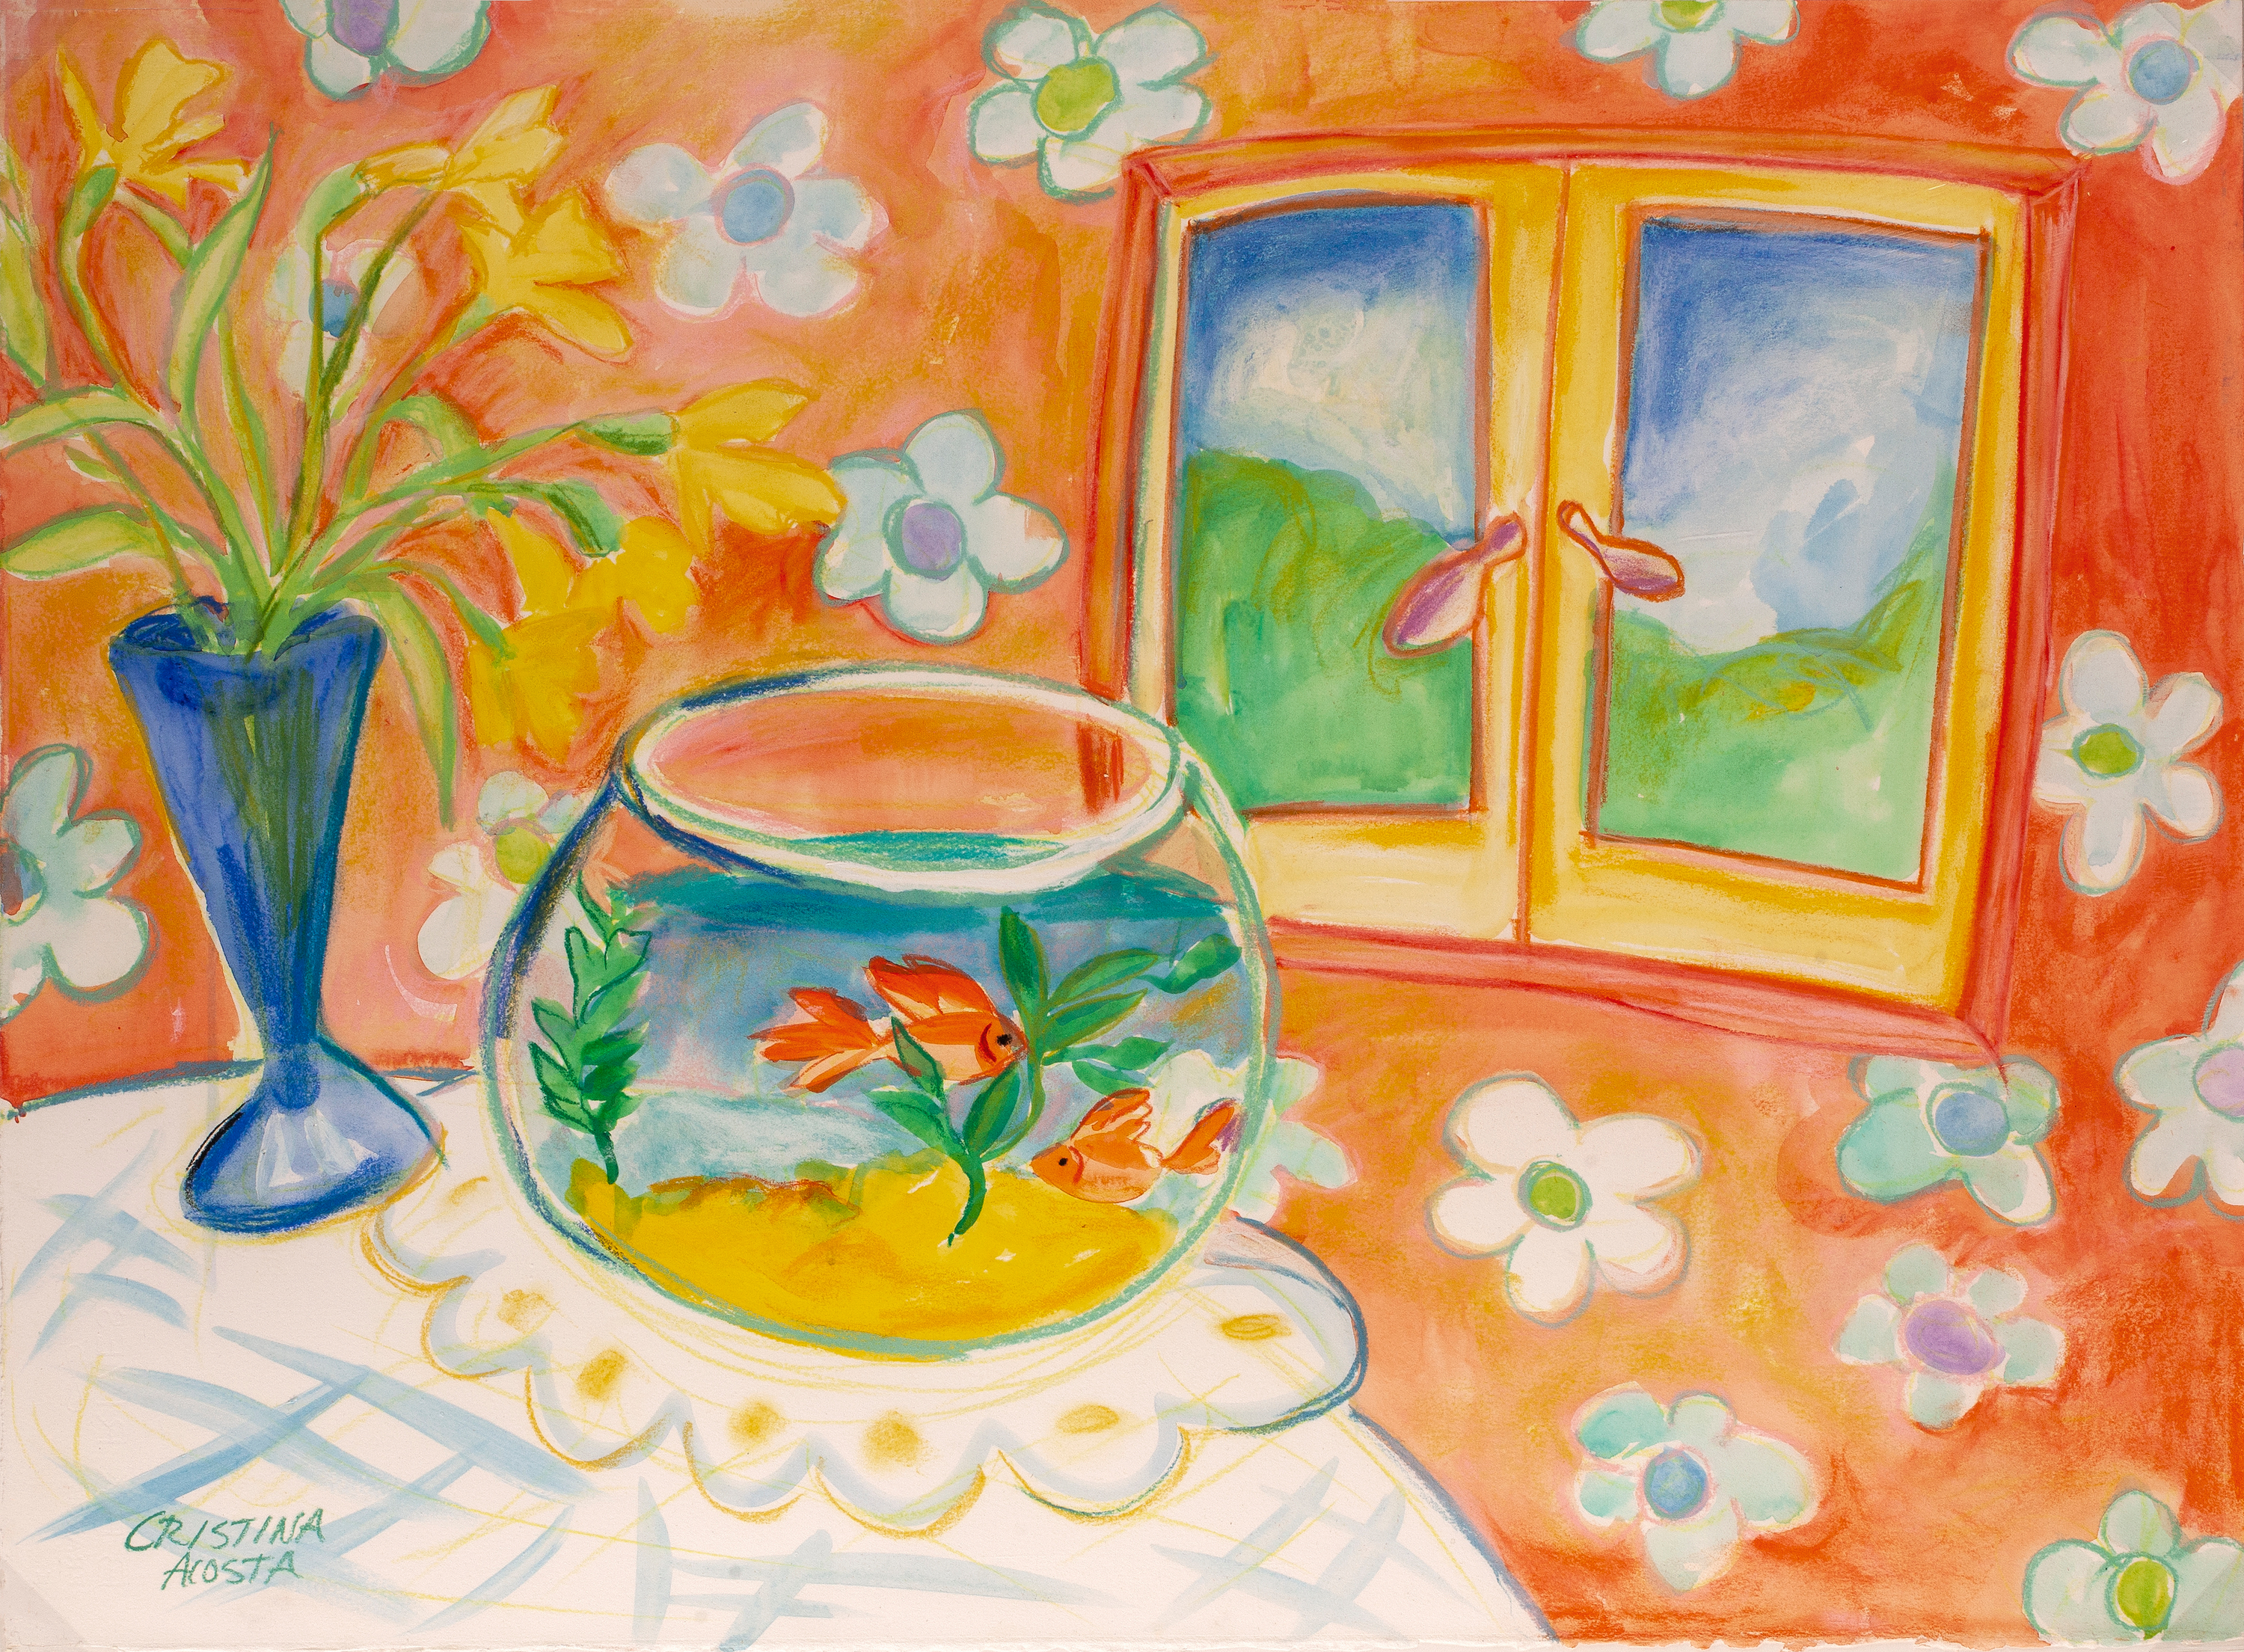 Daffodils and goldfish paint happy cristina acosta 2020 veuolu